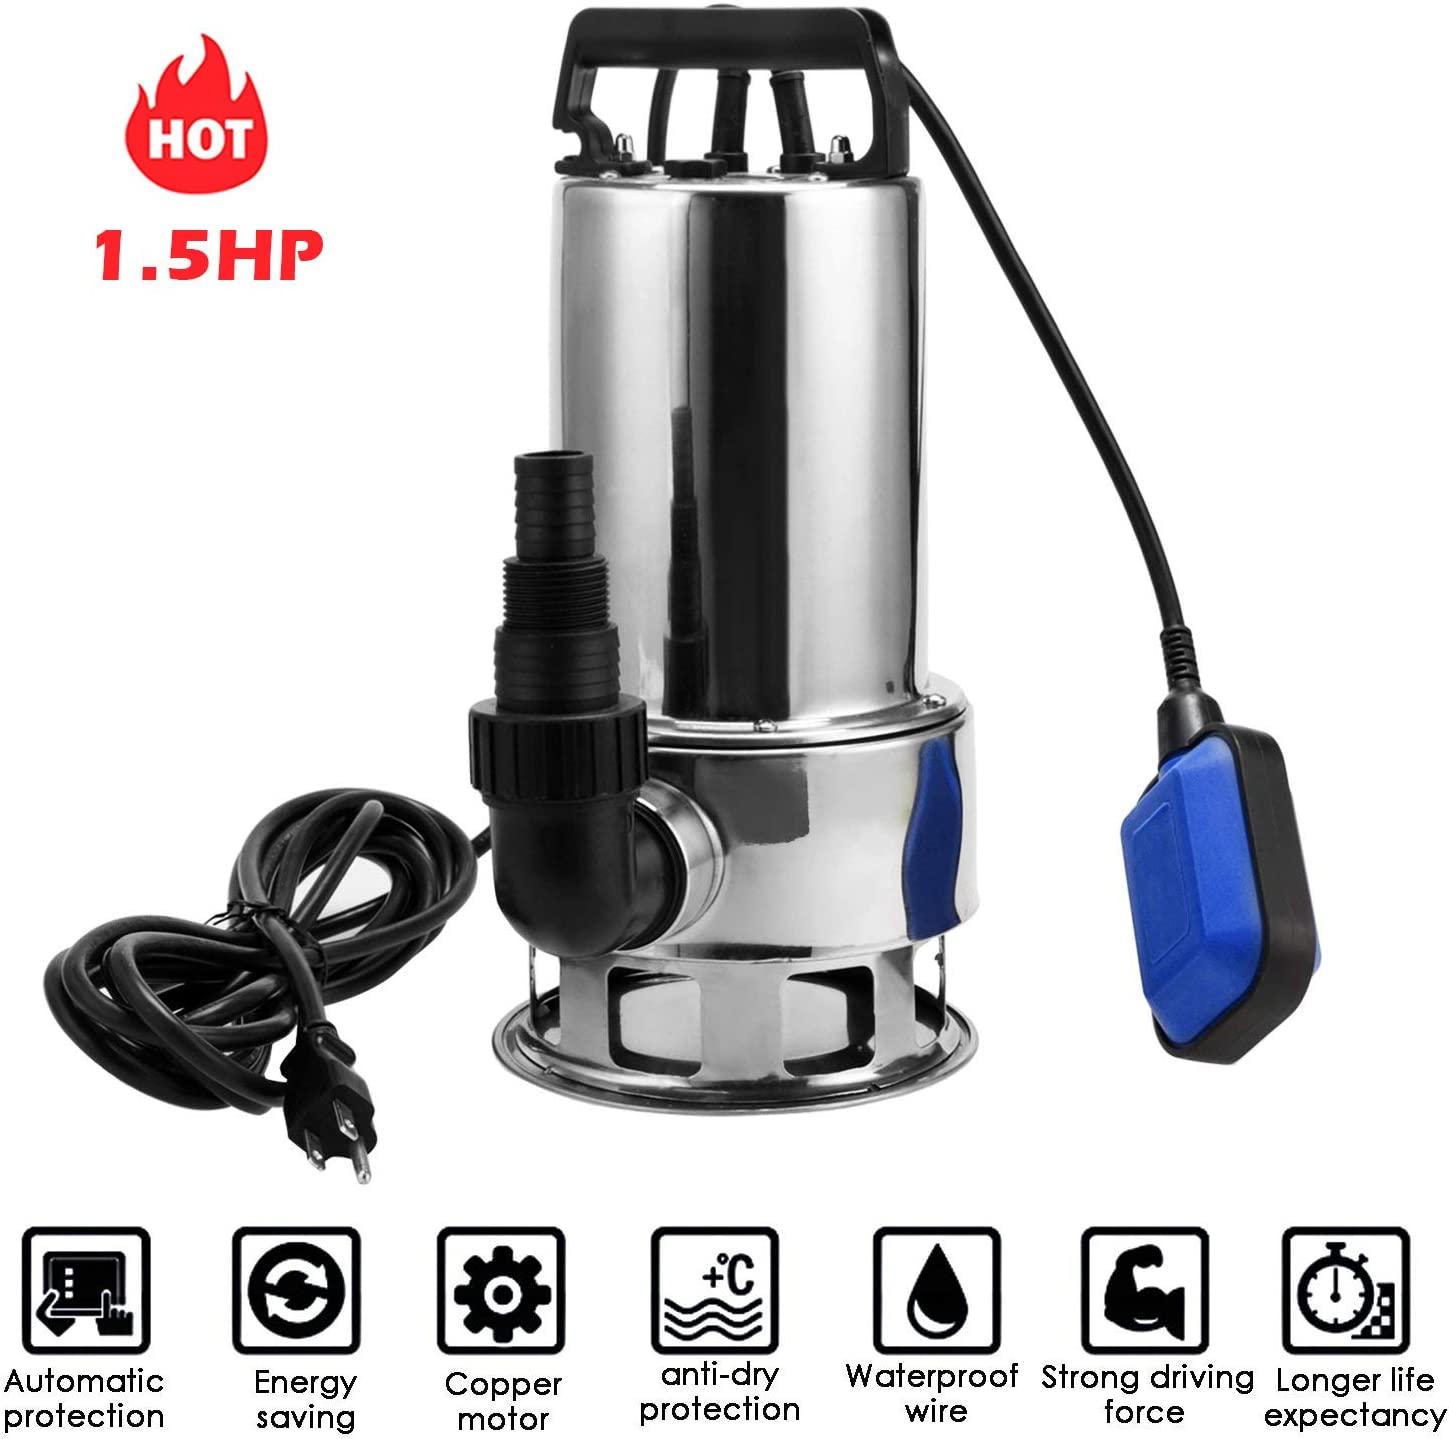 Homdox 1.5 HP Stainless Steel Submersible Sump Pump Dirty Clean Water Pump w/ 15ft Cable and Float Switch (1.5HP)